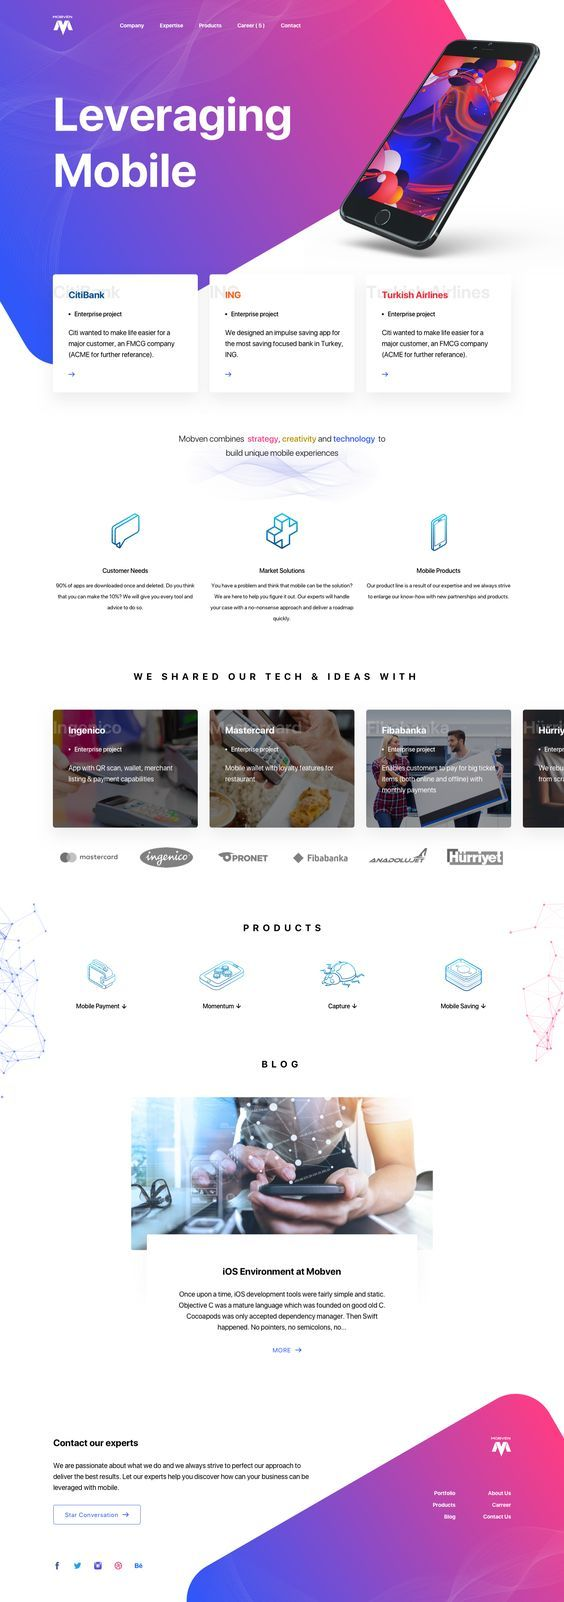 Easily edit online, print or share via email. Pin By Daniel Ethan Templates On Web Dizajn Web Design Web Development Design Web Design Inspiration